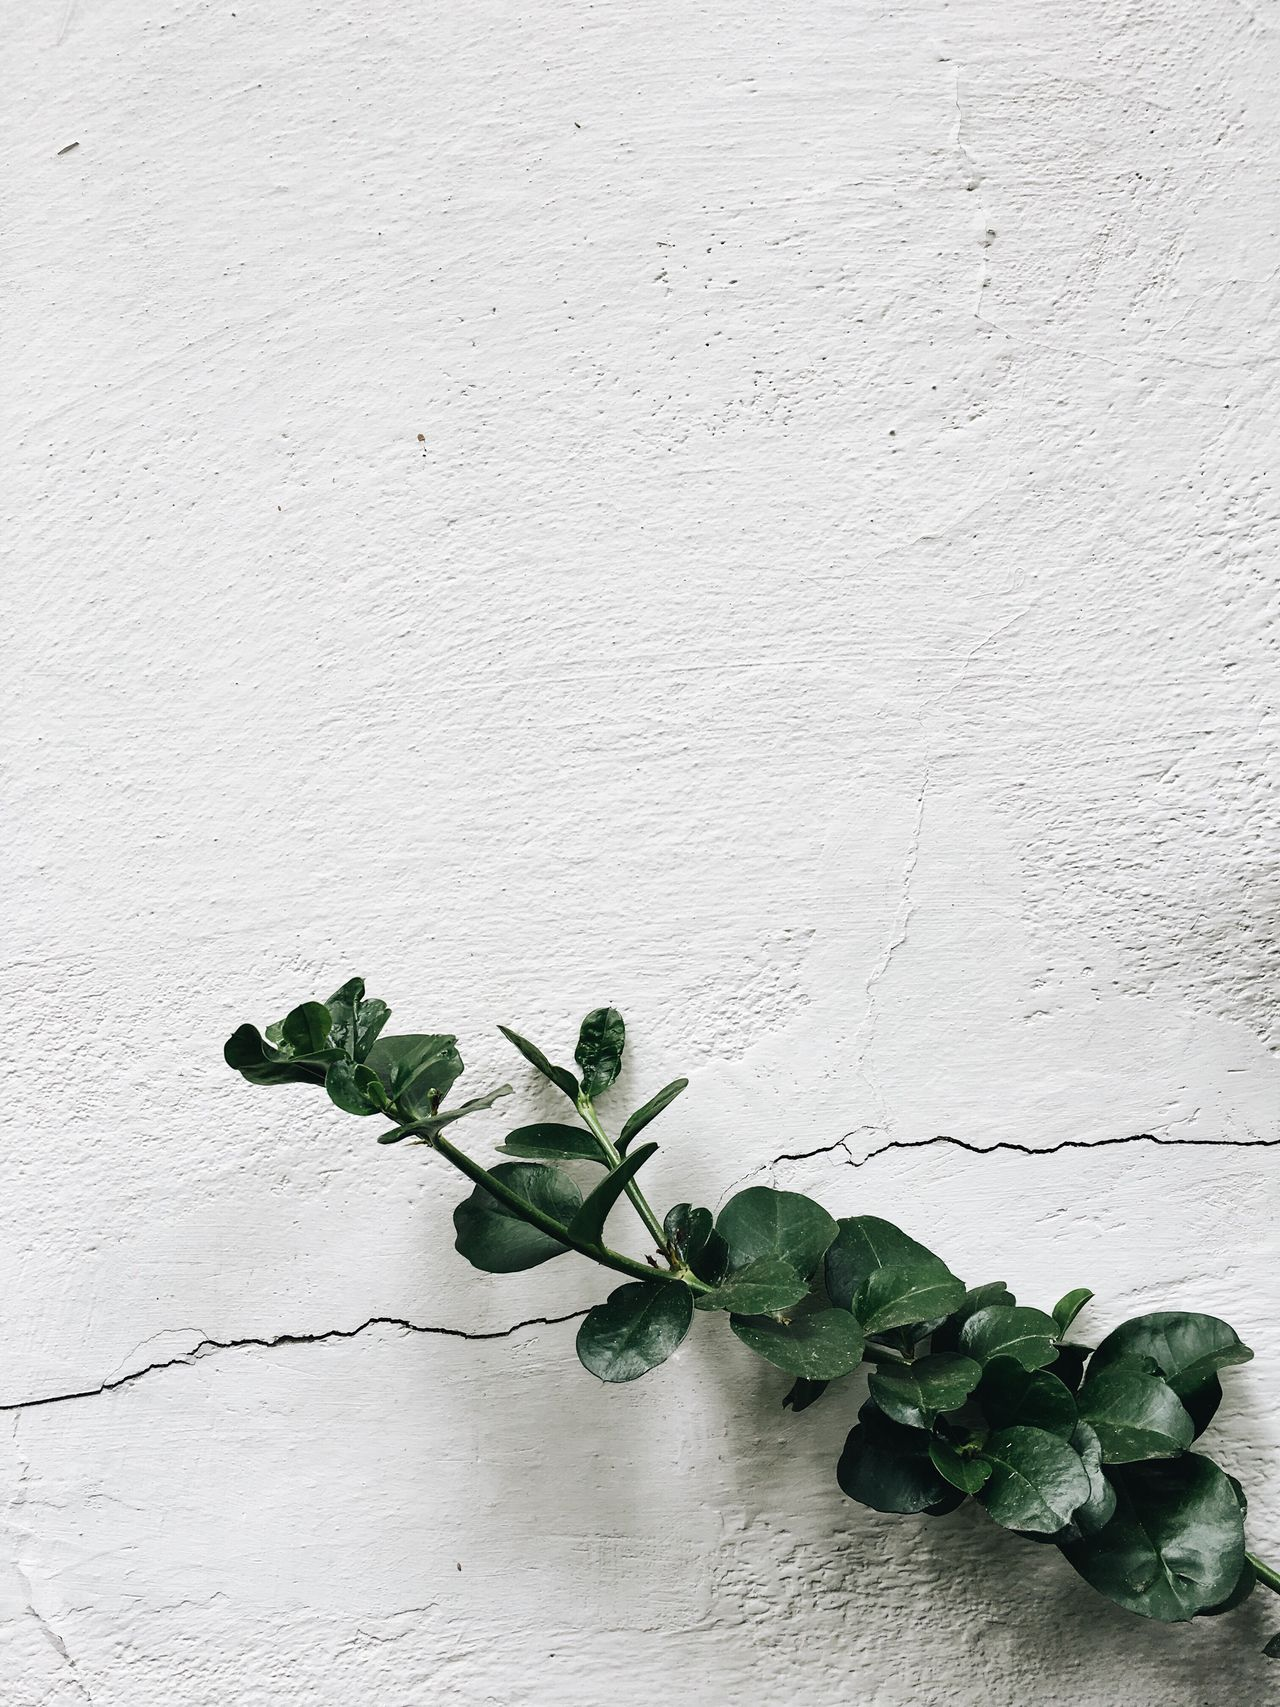 Wall - Building Feature Plant Leaf White Color Green Color No People Ivy Growth Nature Whitewashed Flower Fragility Basil Freshness Beauty In Nature EyeEm Nature Lover Botanical Gardens Greenhouse Nature Plant